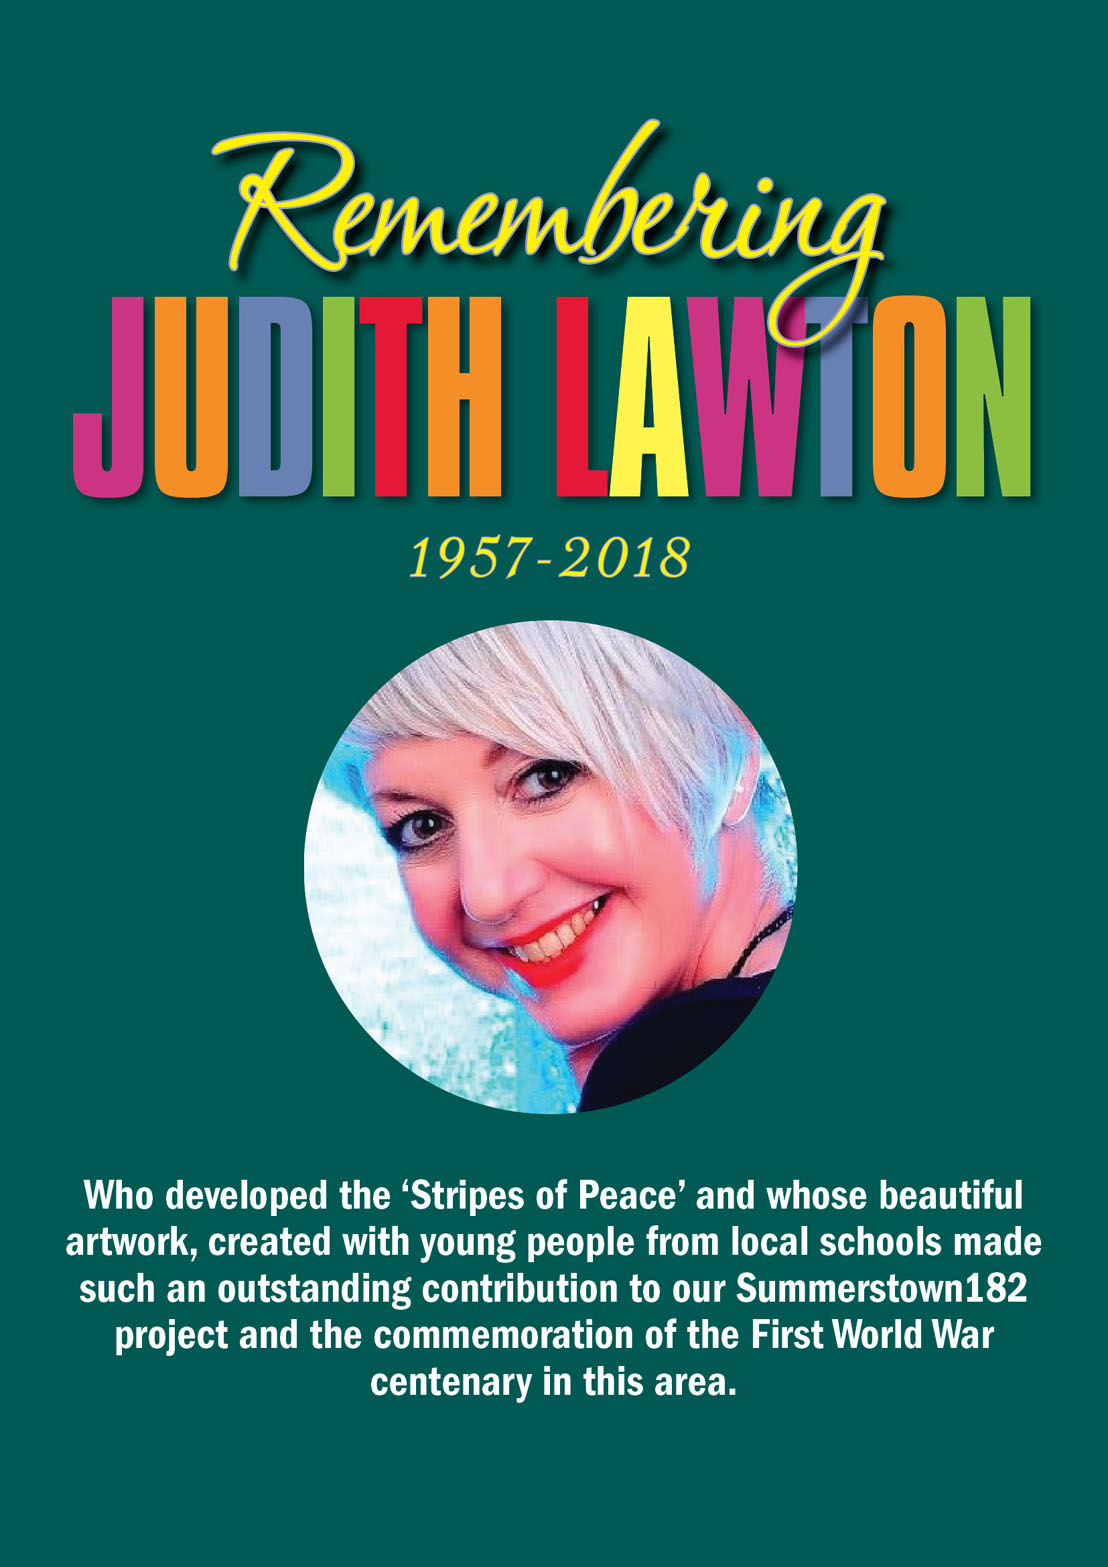 JudithTribute